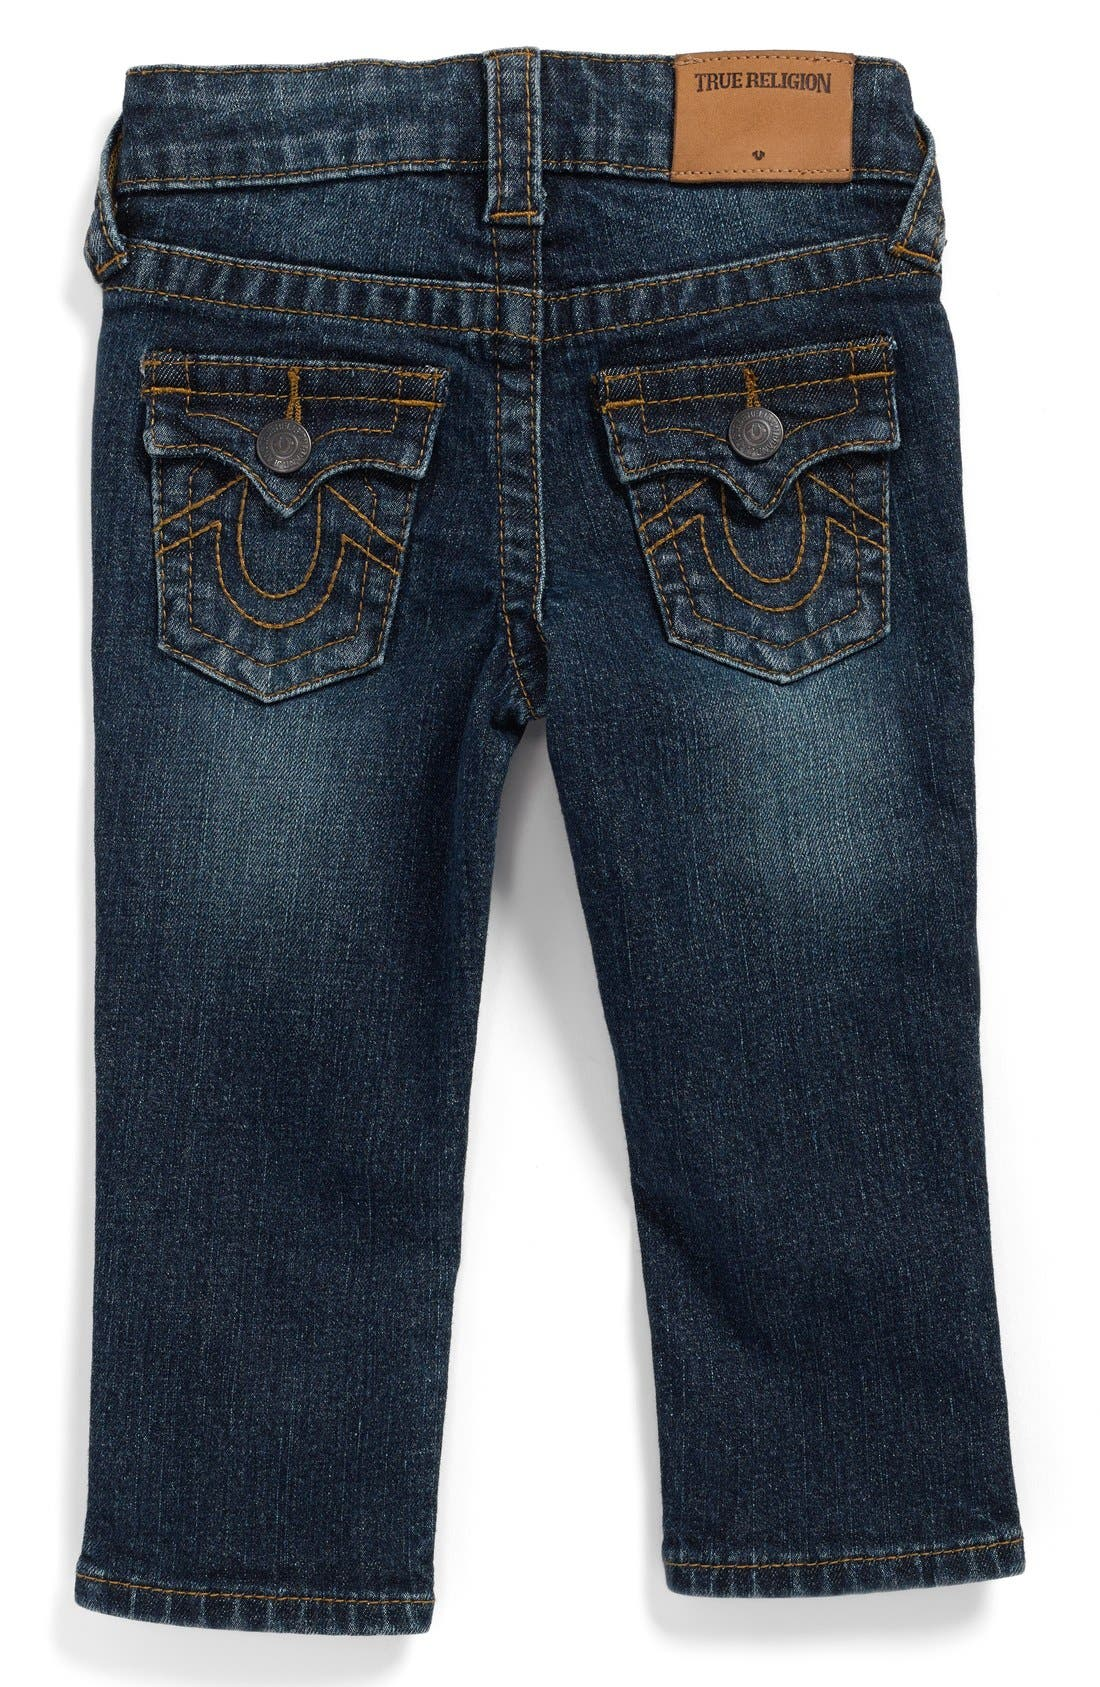 'Geno' Relaxed Slim Fit Classic Jeans,                             Alternate thumbnail 3, color,                             INDIGO BLAST